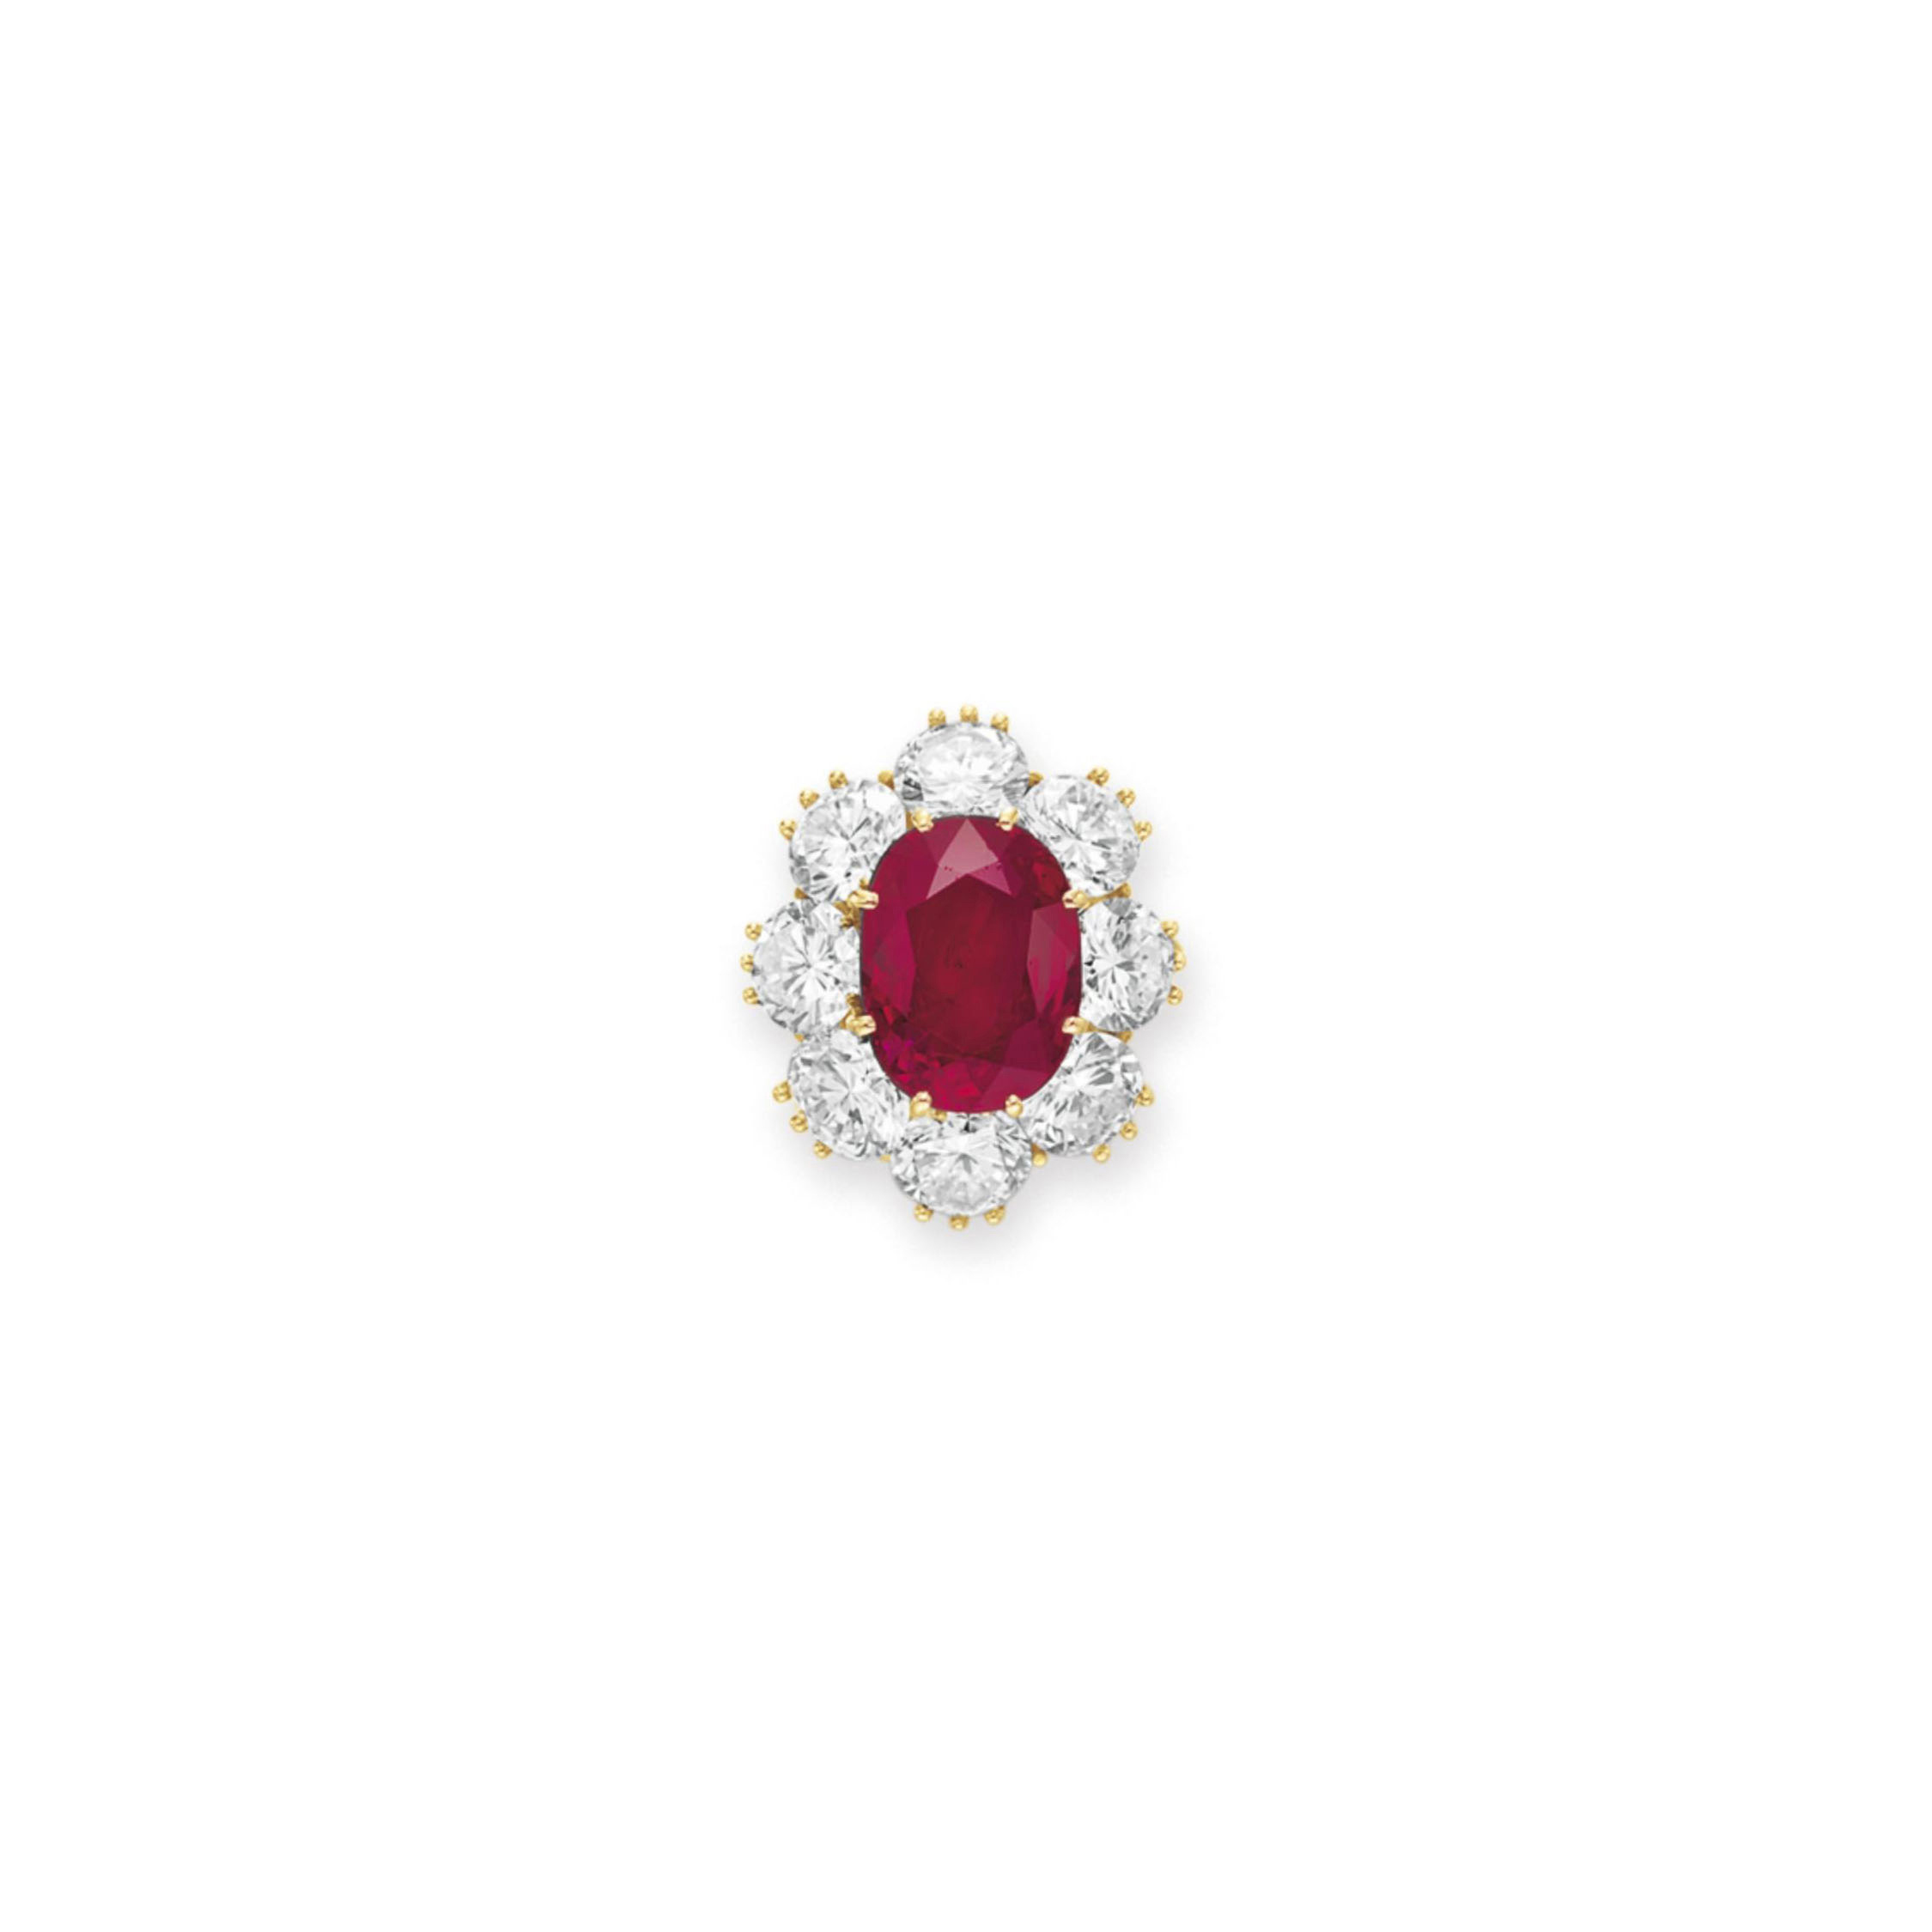 A RUBY AND DIAMOND RING, BY VAN CLEEF & ARPELS